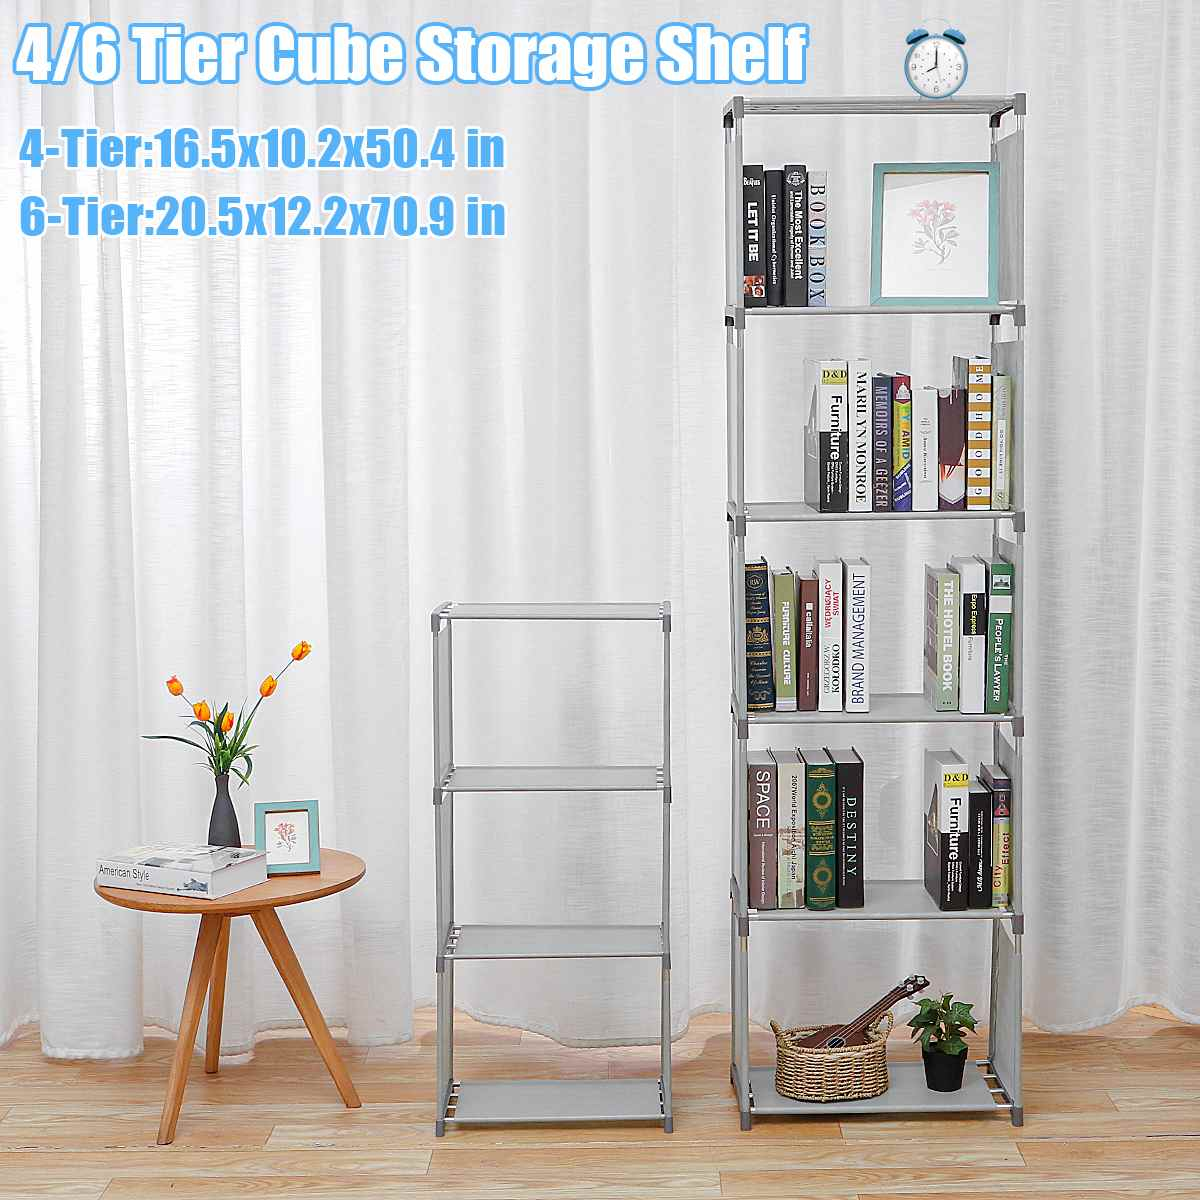 4/6Tier Cube Bookshelf Storage Shelves Standing Cabinet Display Rack Room DIY Organizer Office Household Bookcase Home Furniture